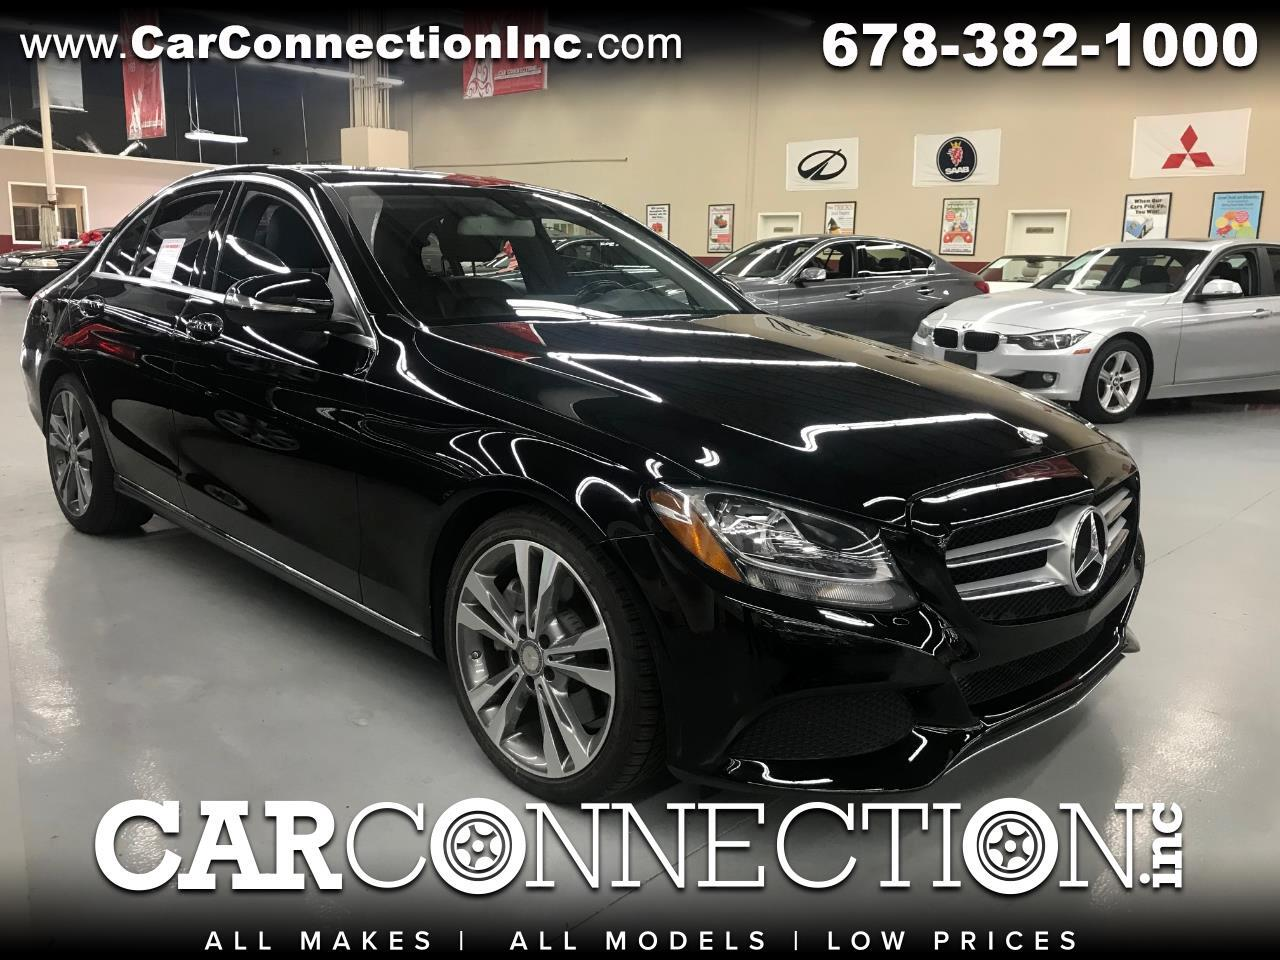 2015 Mercedes-Benz C-Class C 300 Sedan with Luxury Pkg